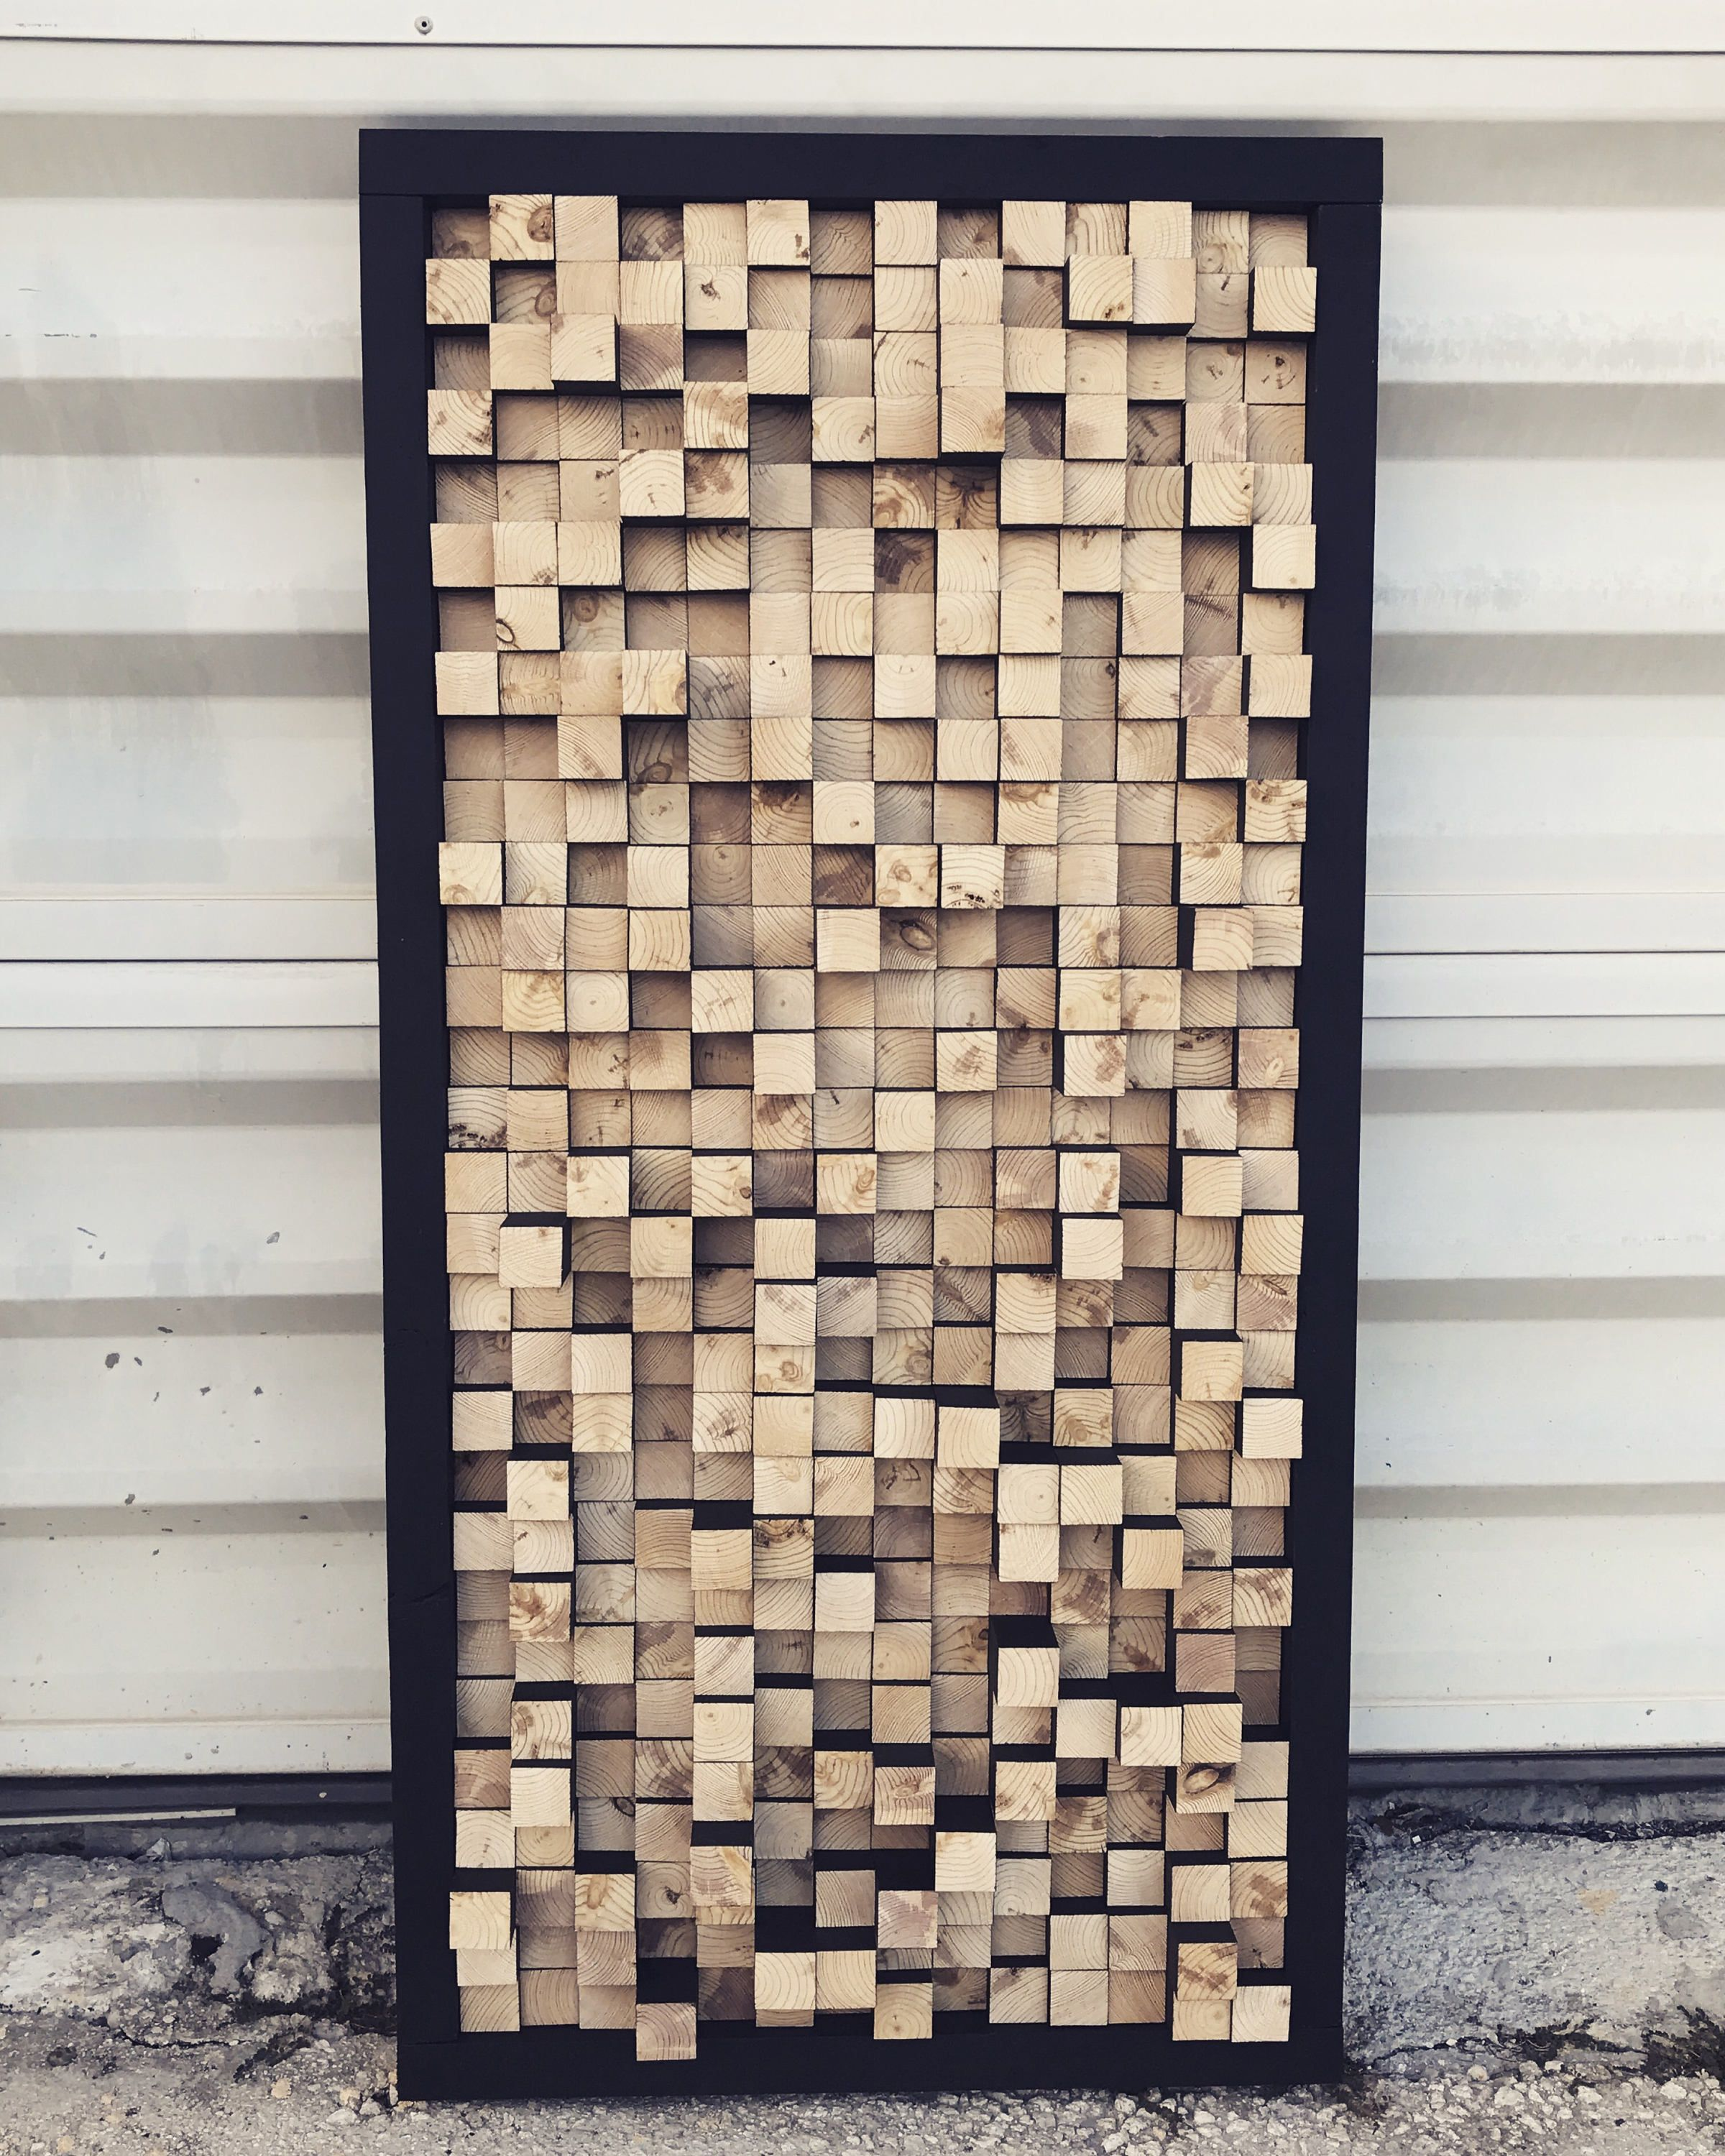 Studio Wooden Sound Diffuser Acoustic Panel Soundproofing Etsy In 2020 Acoustic Panels Wooden Art Sound Proofing